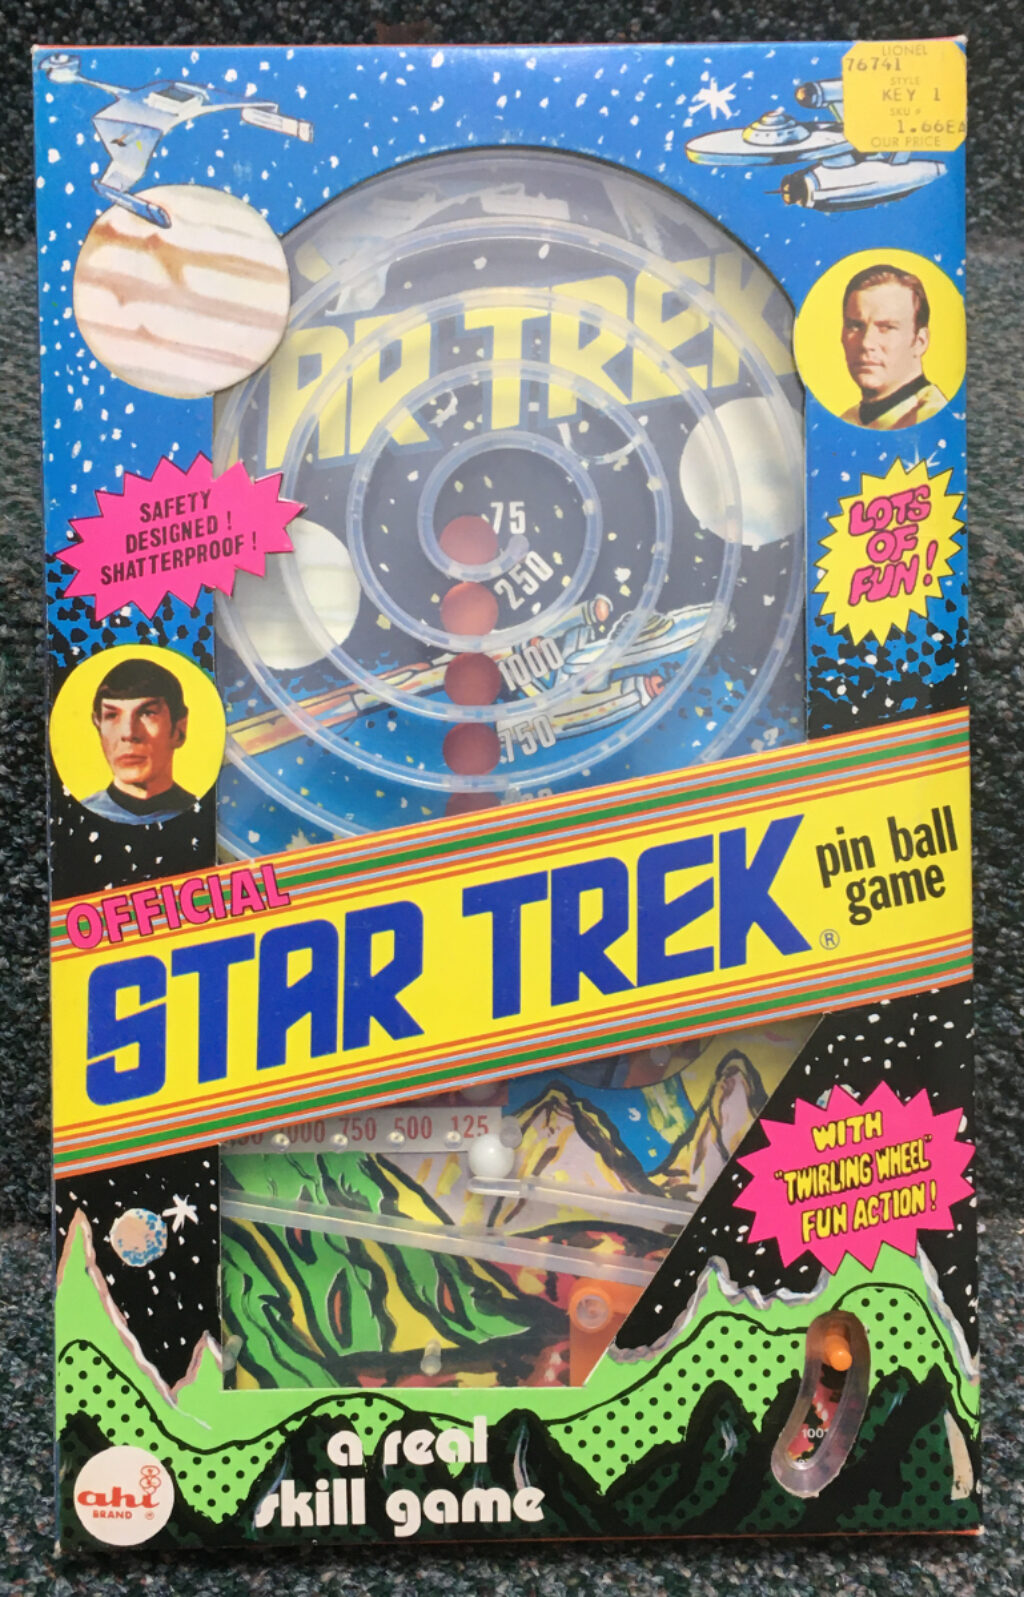 1977 ahi official star trek pin ball game 1